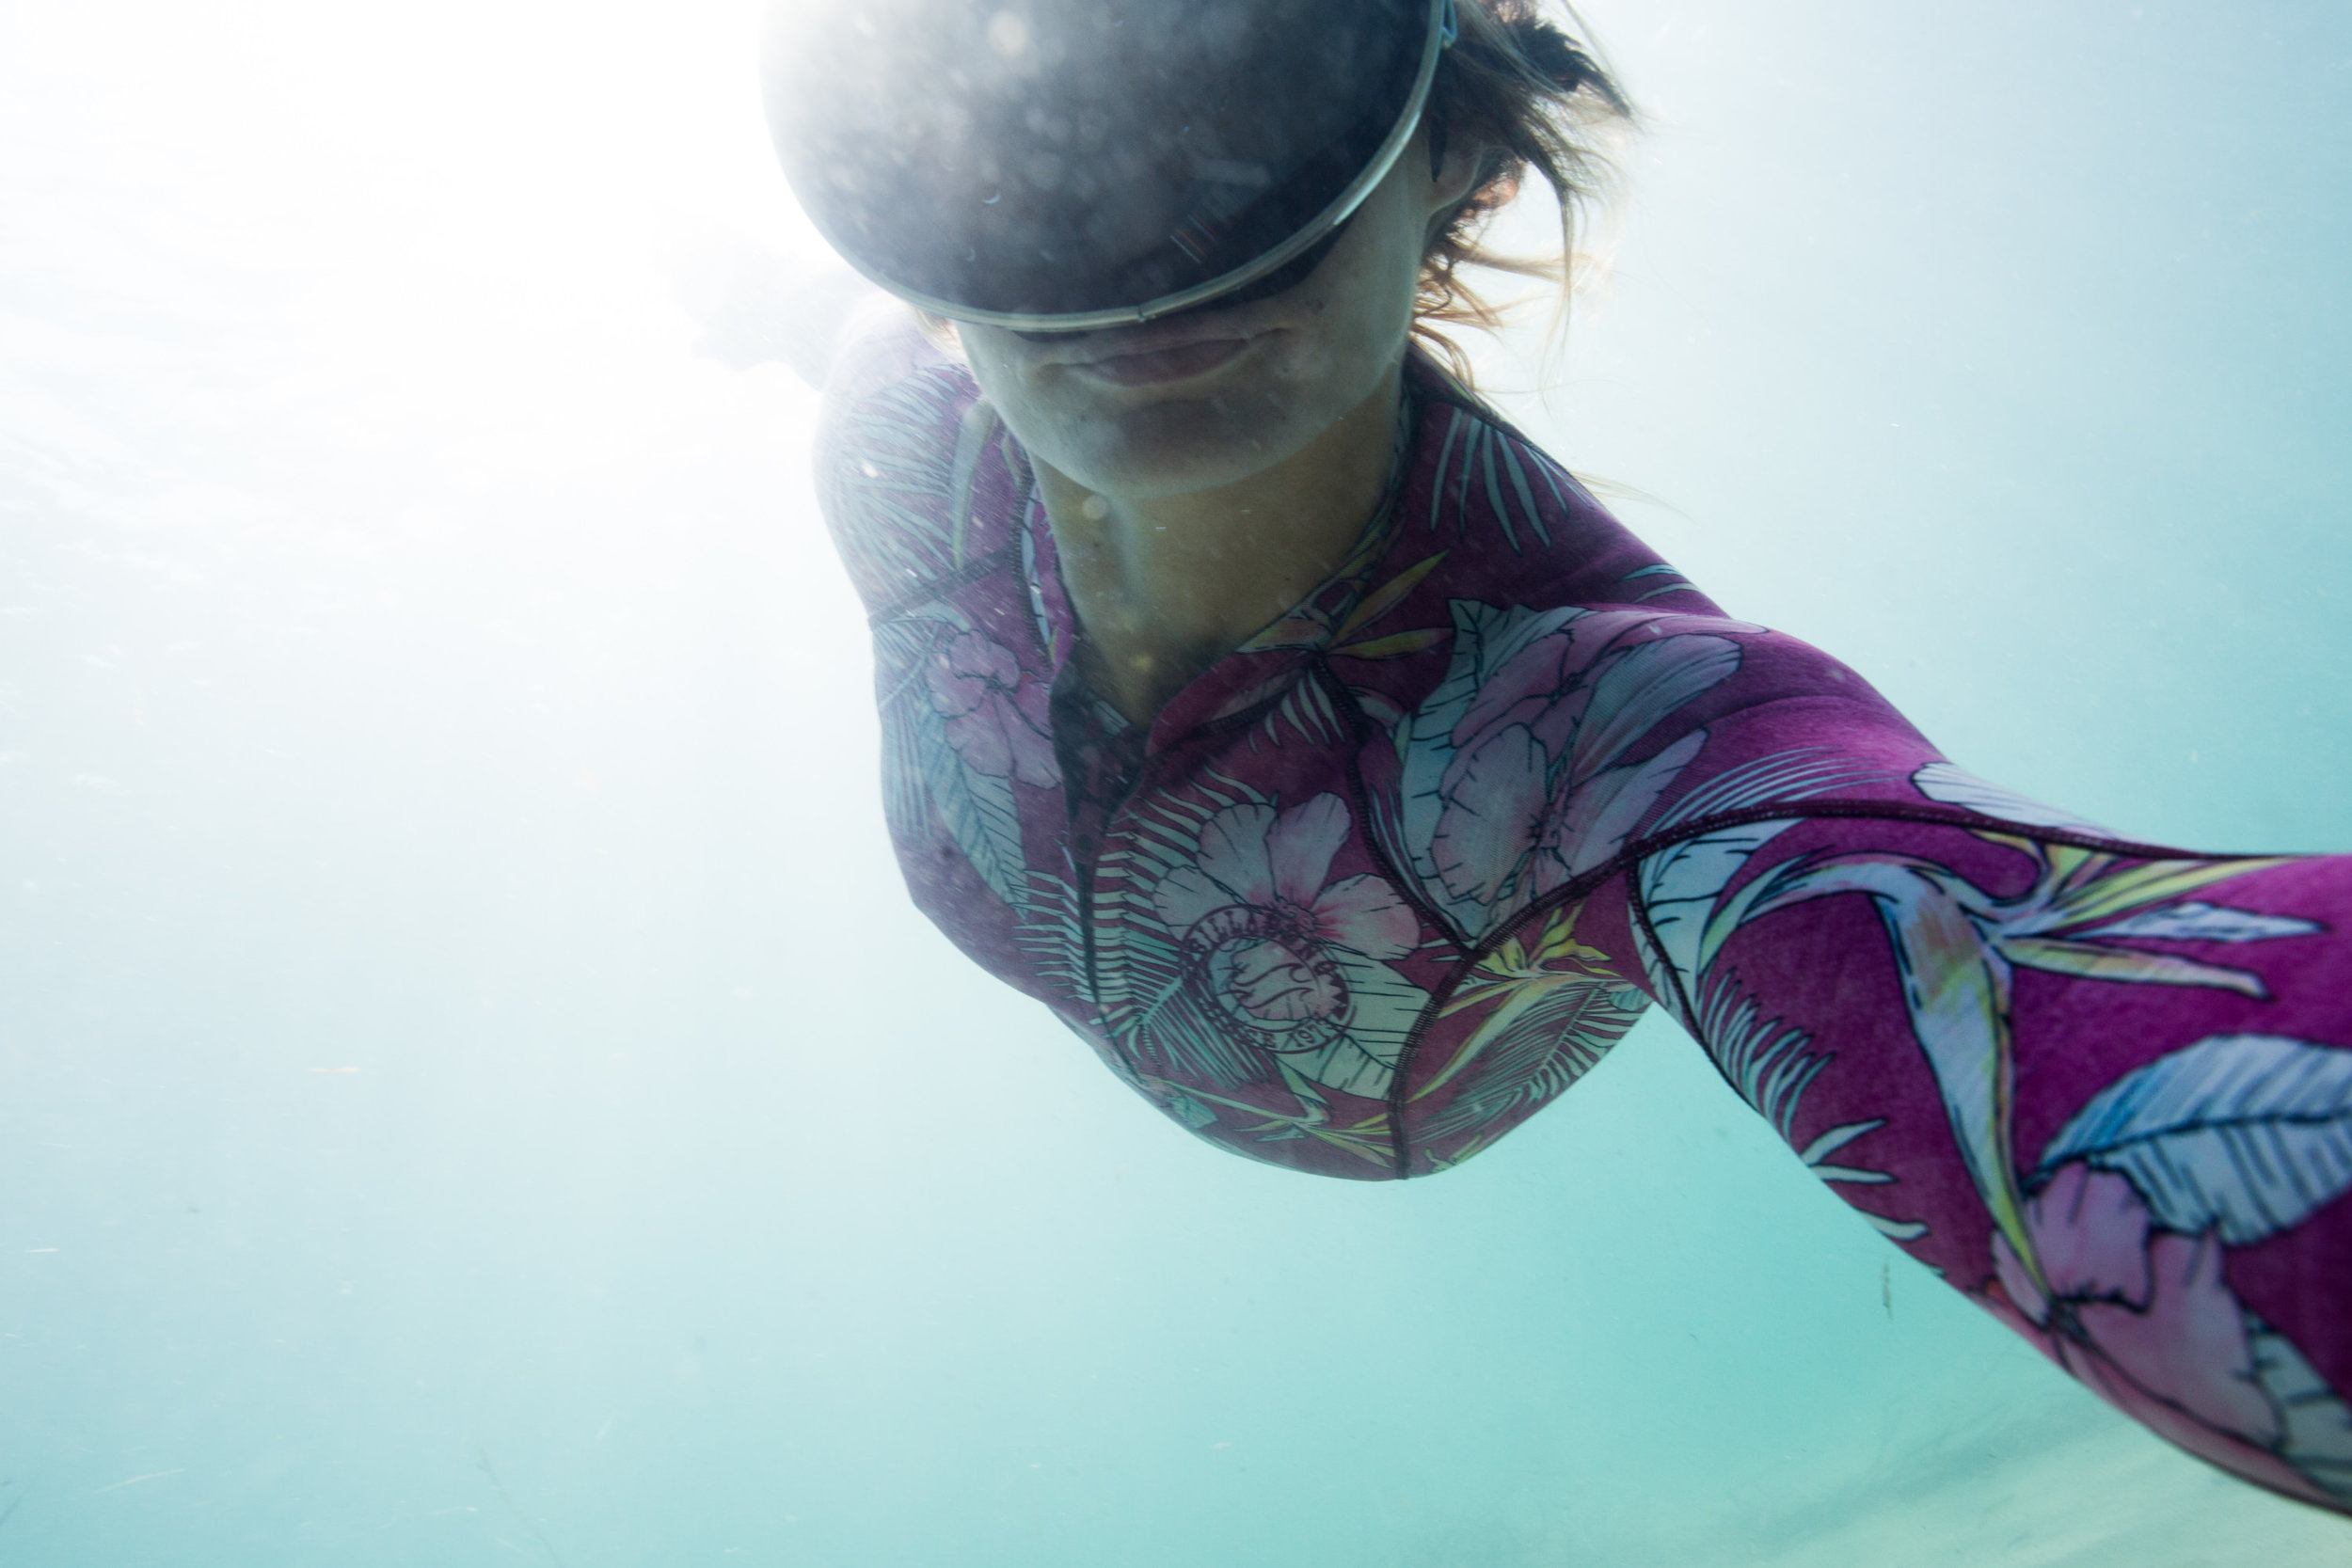 celinehamelin-photographe-aquatique-freedive-apnee-sessionsportraits.jpg2.jpg